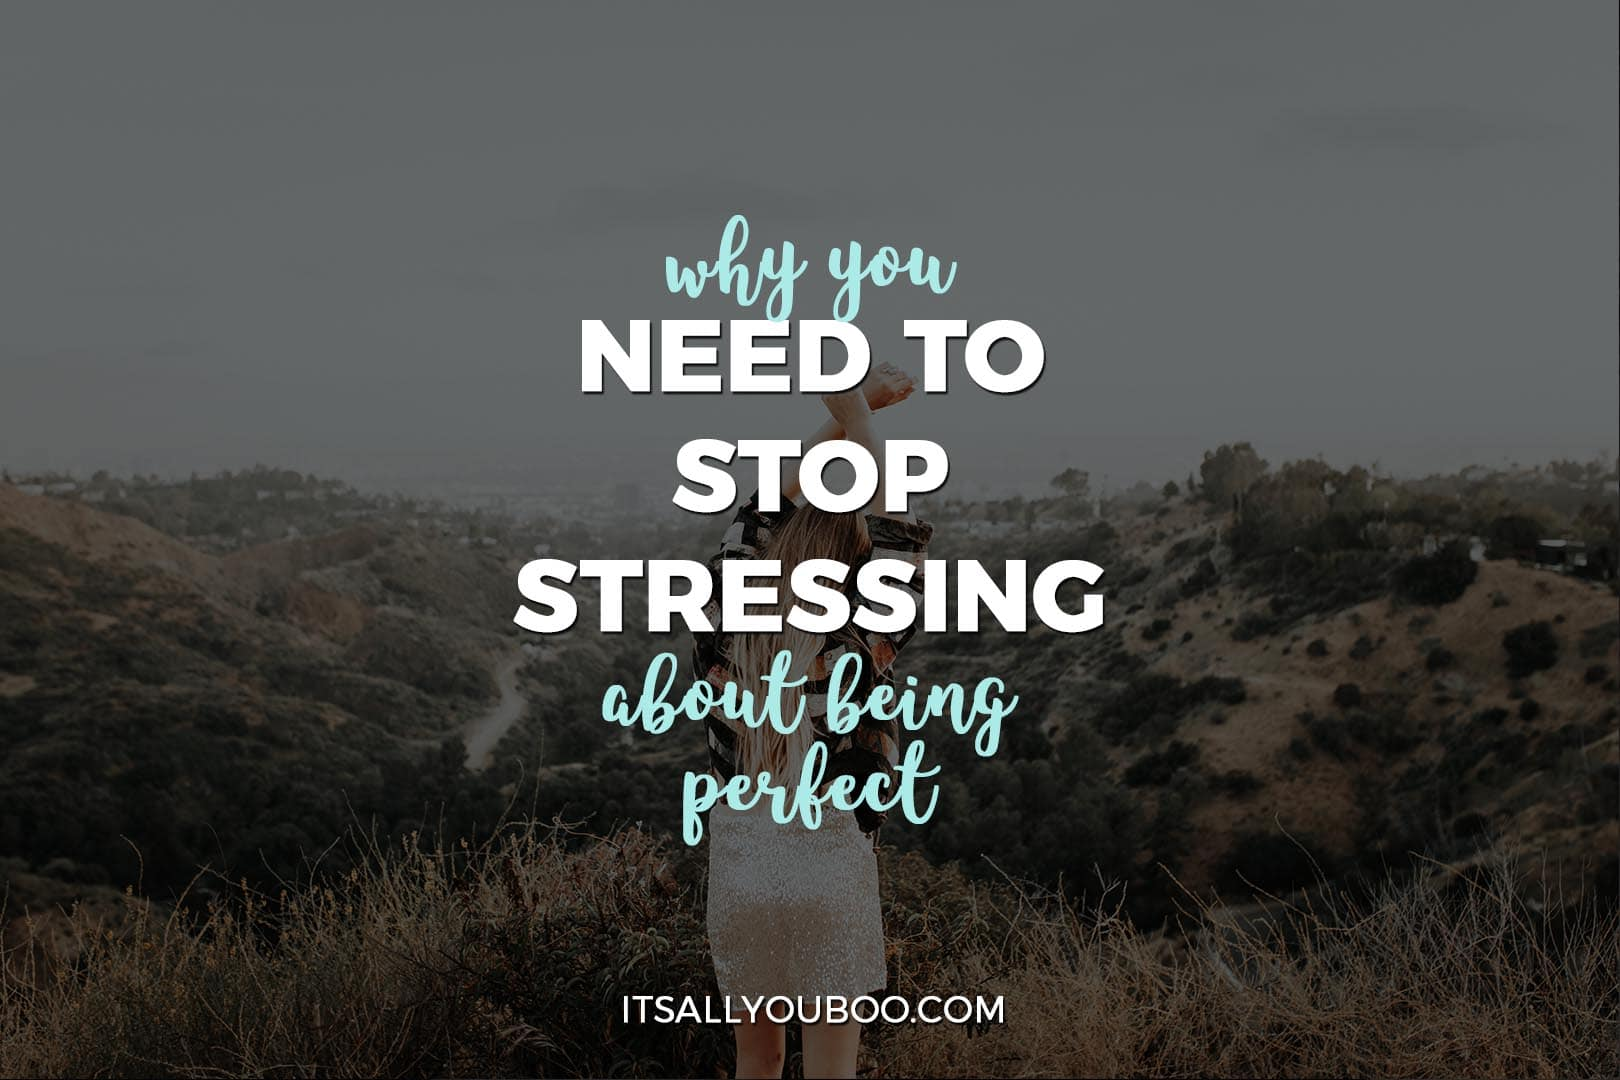 Why You Need to Stop Stressing About Being Perfect